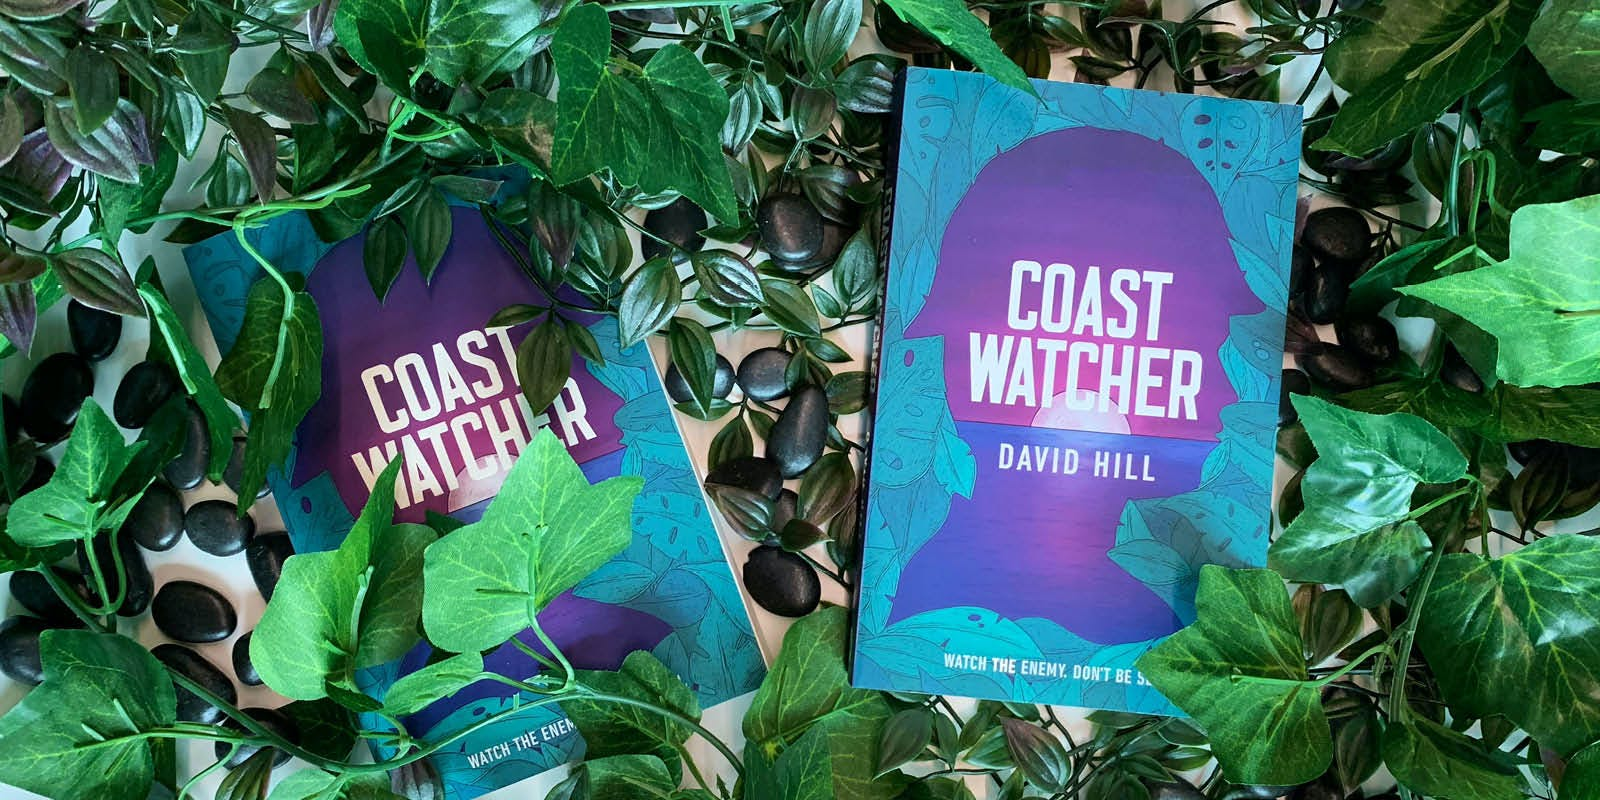 Real Readers Review: Coastwatcher